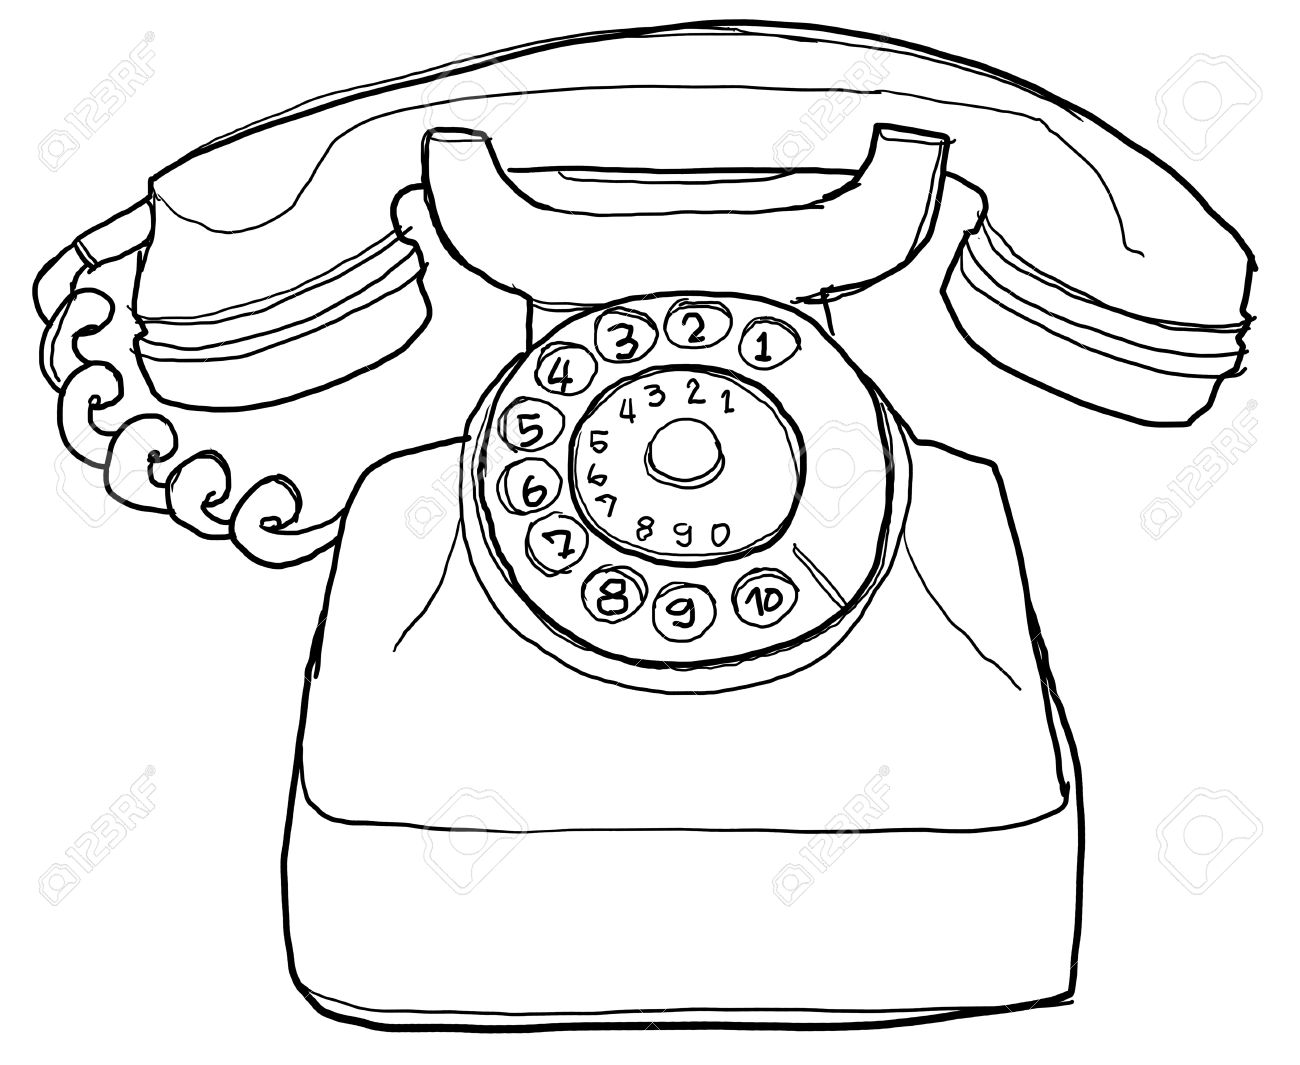 old  telephone b&w Stock Photo - 14981436